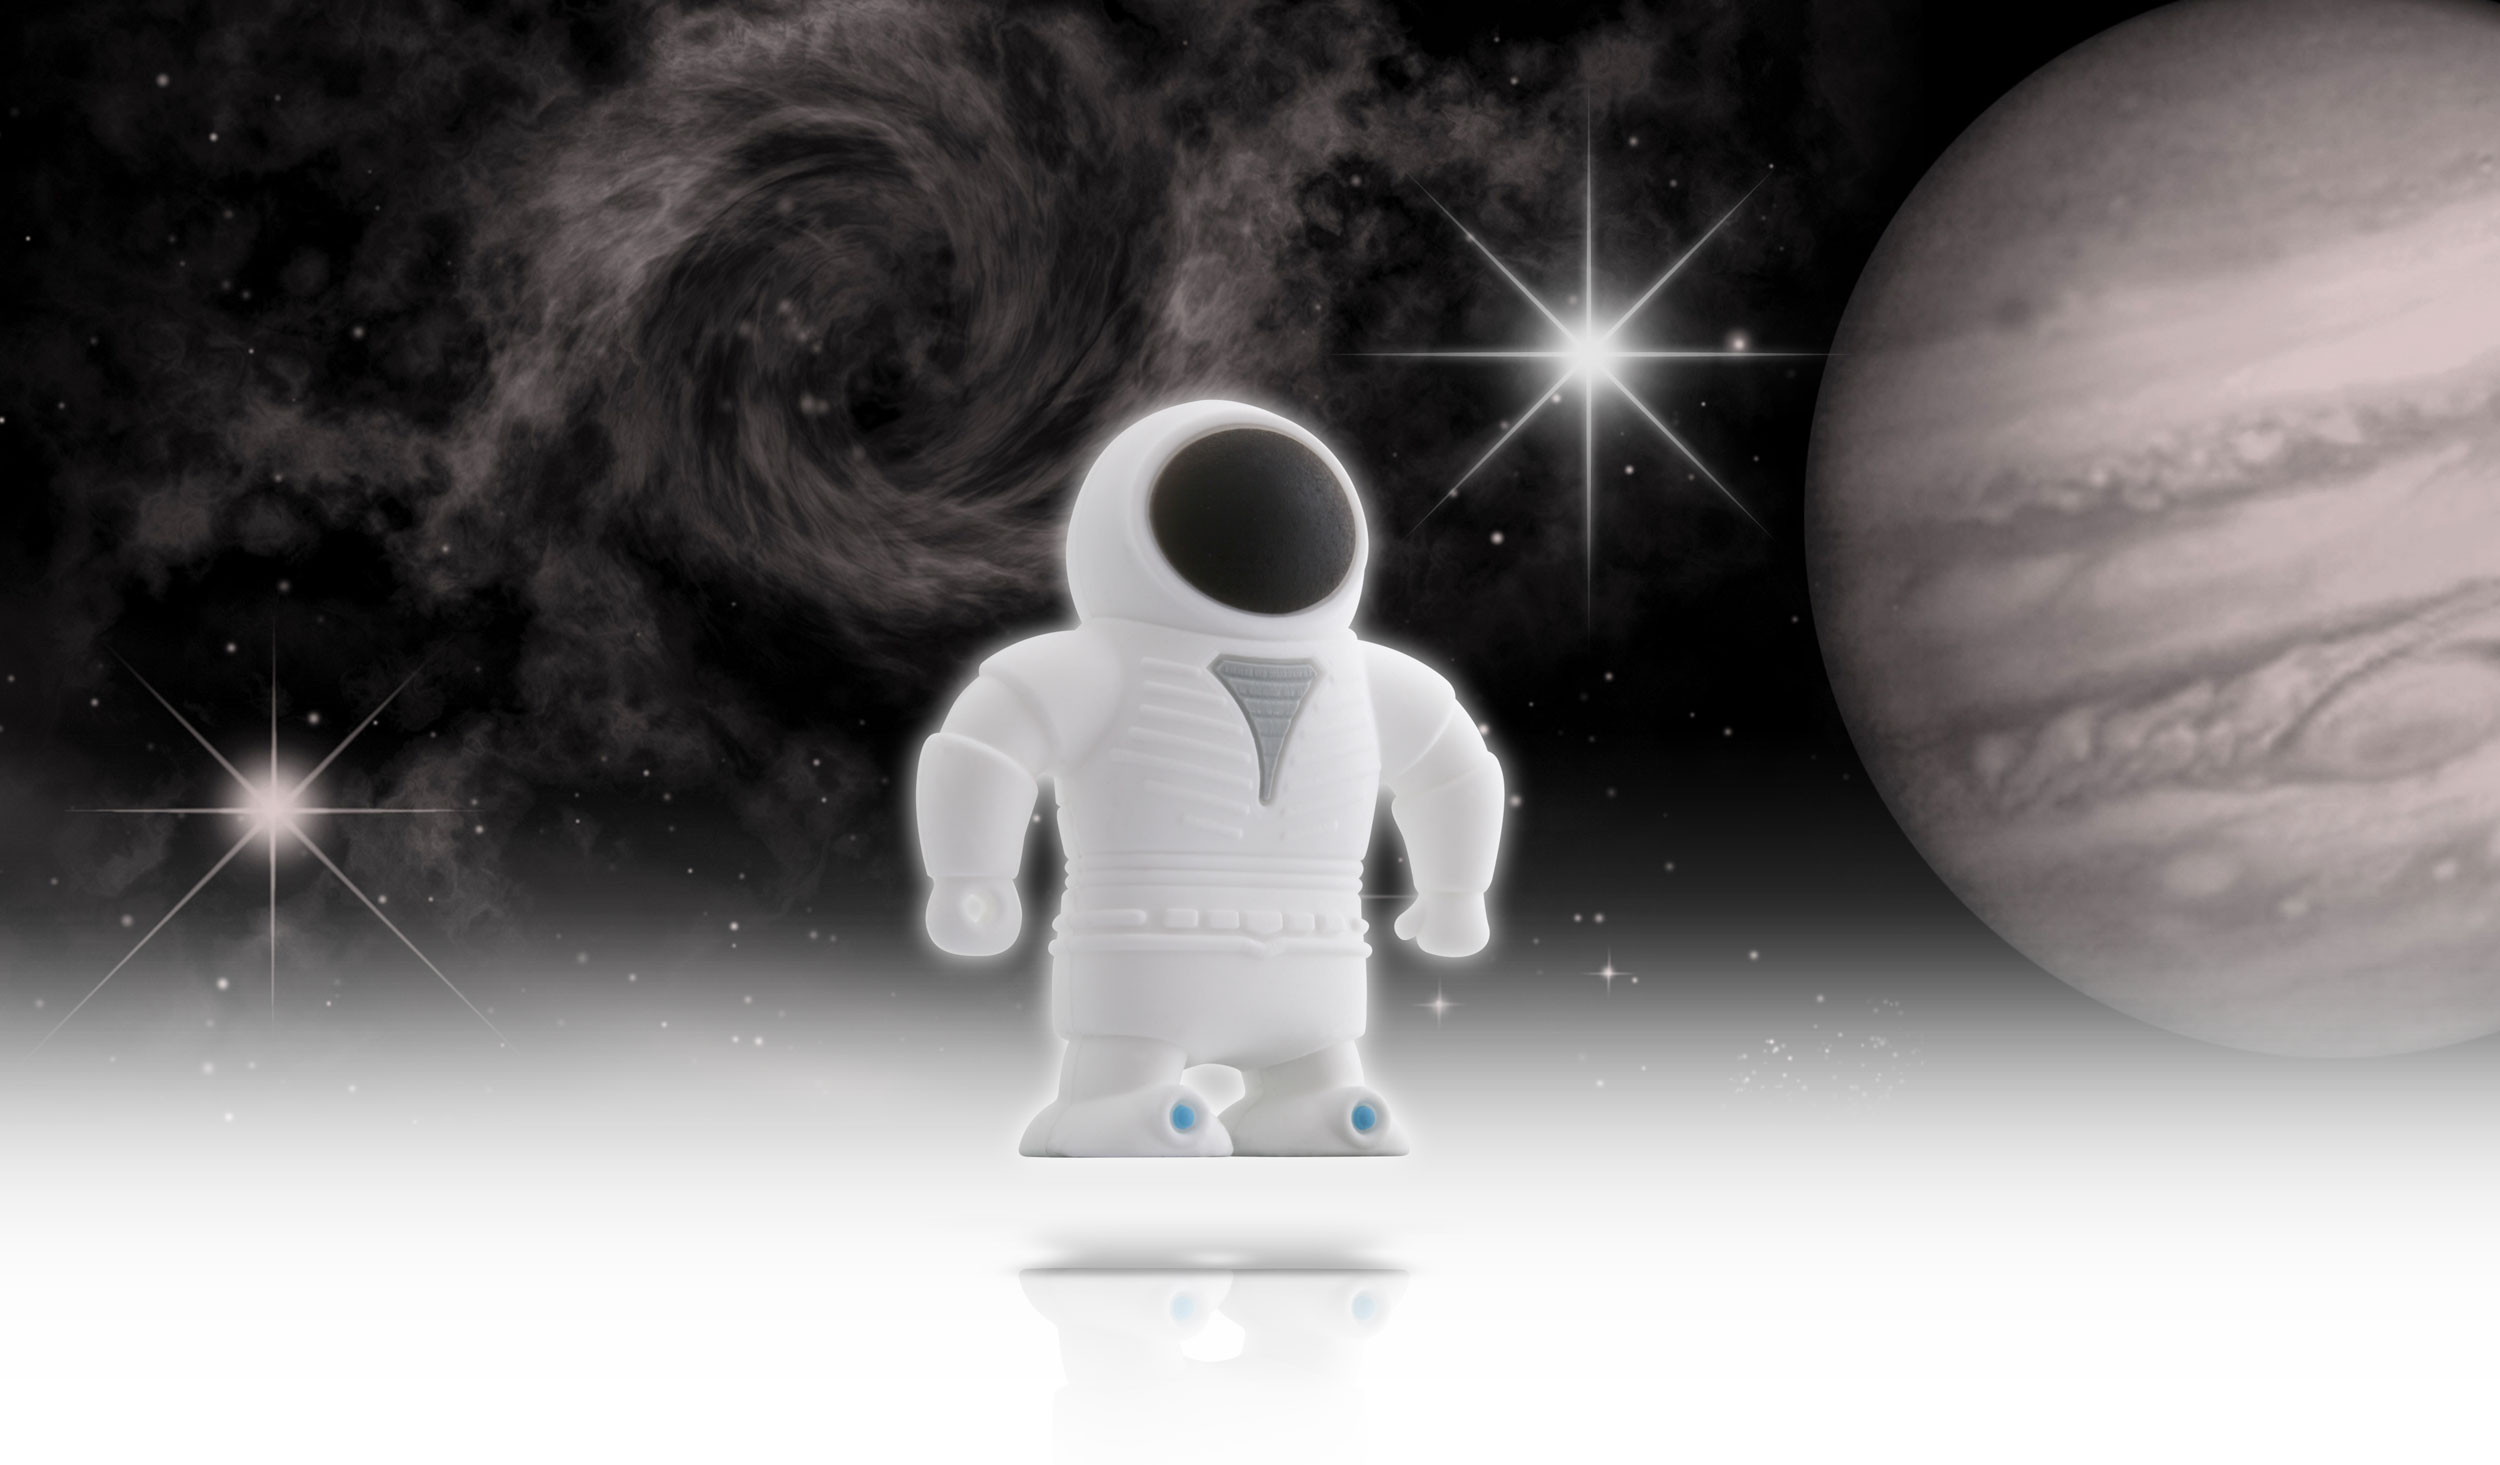 USB Bone 8GB Spaceman - USB 2.0